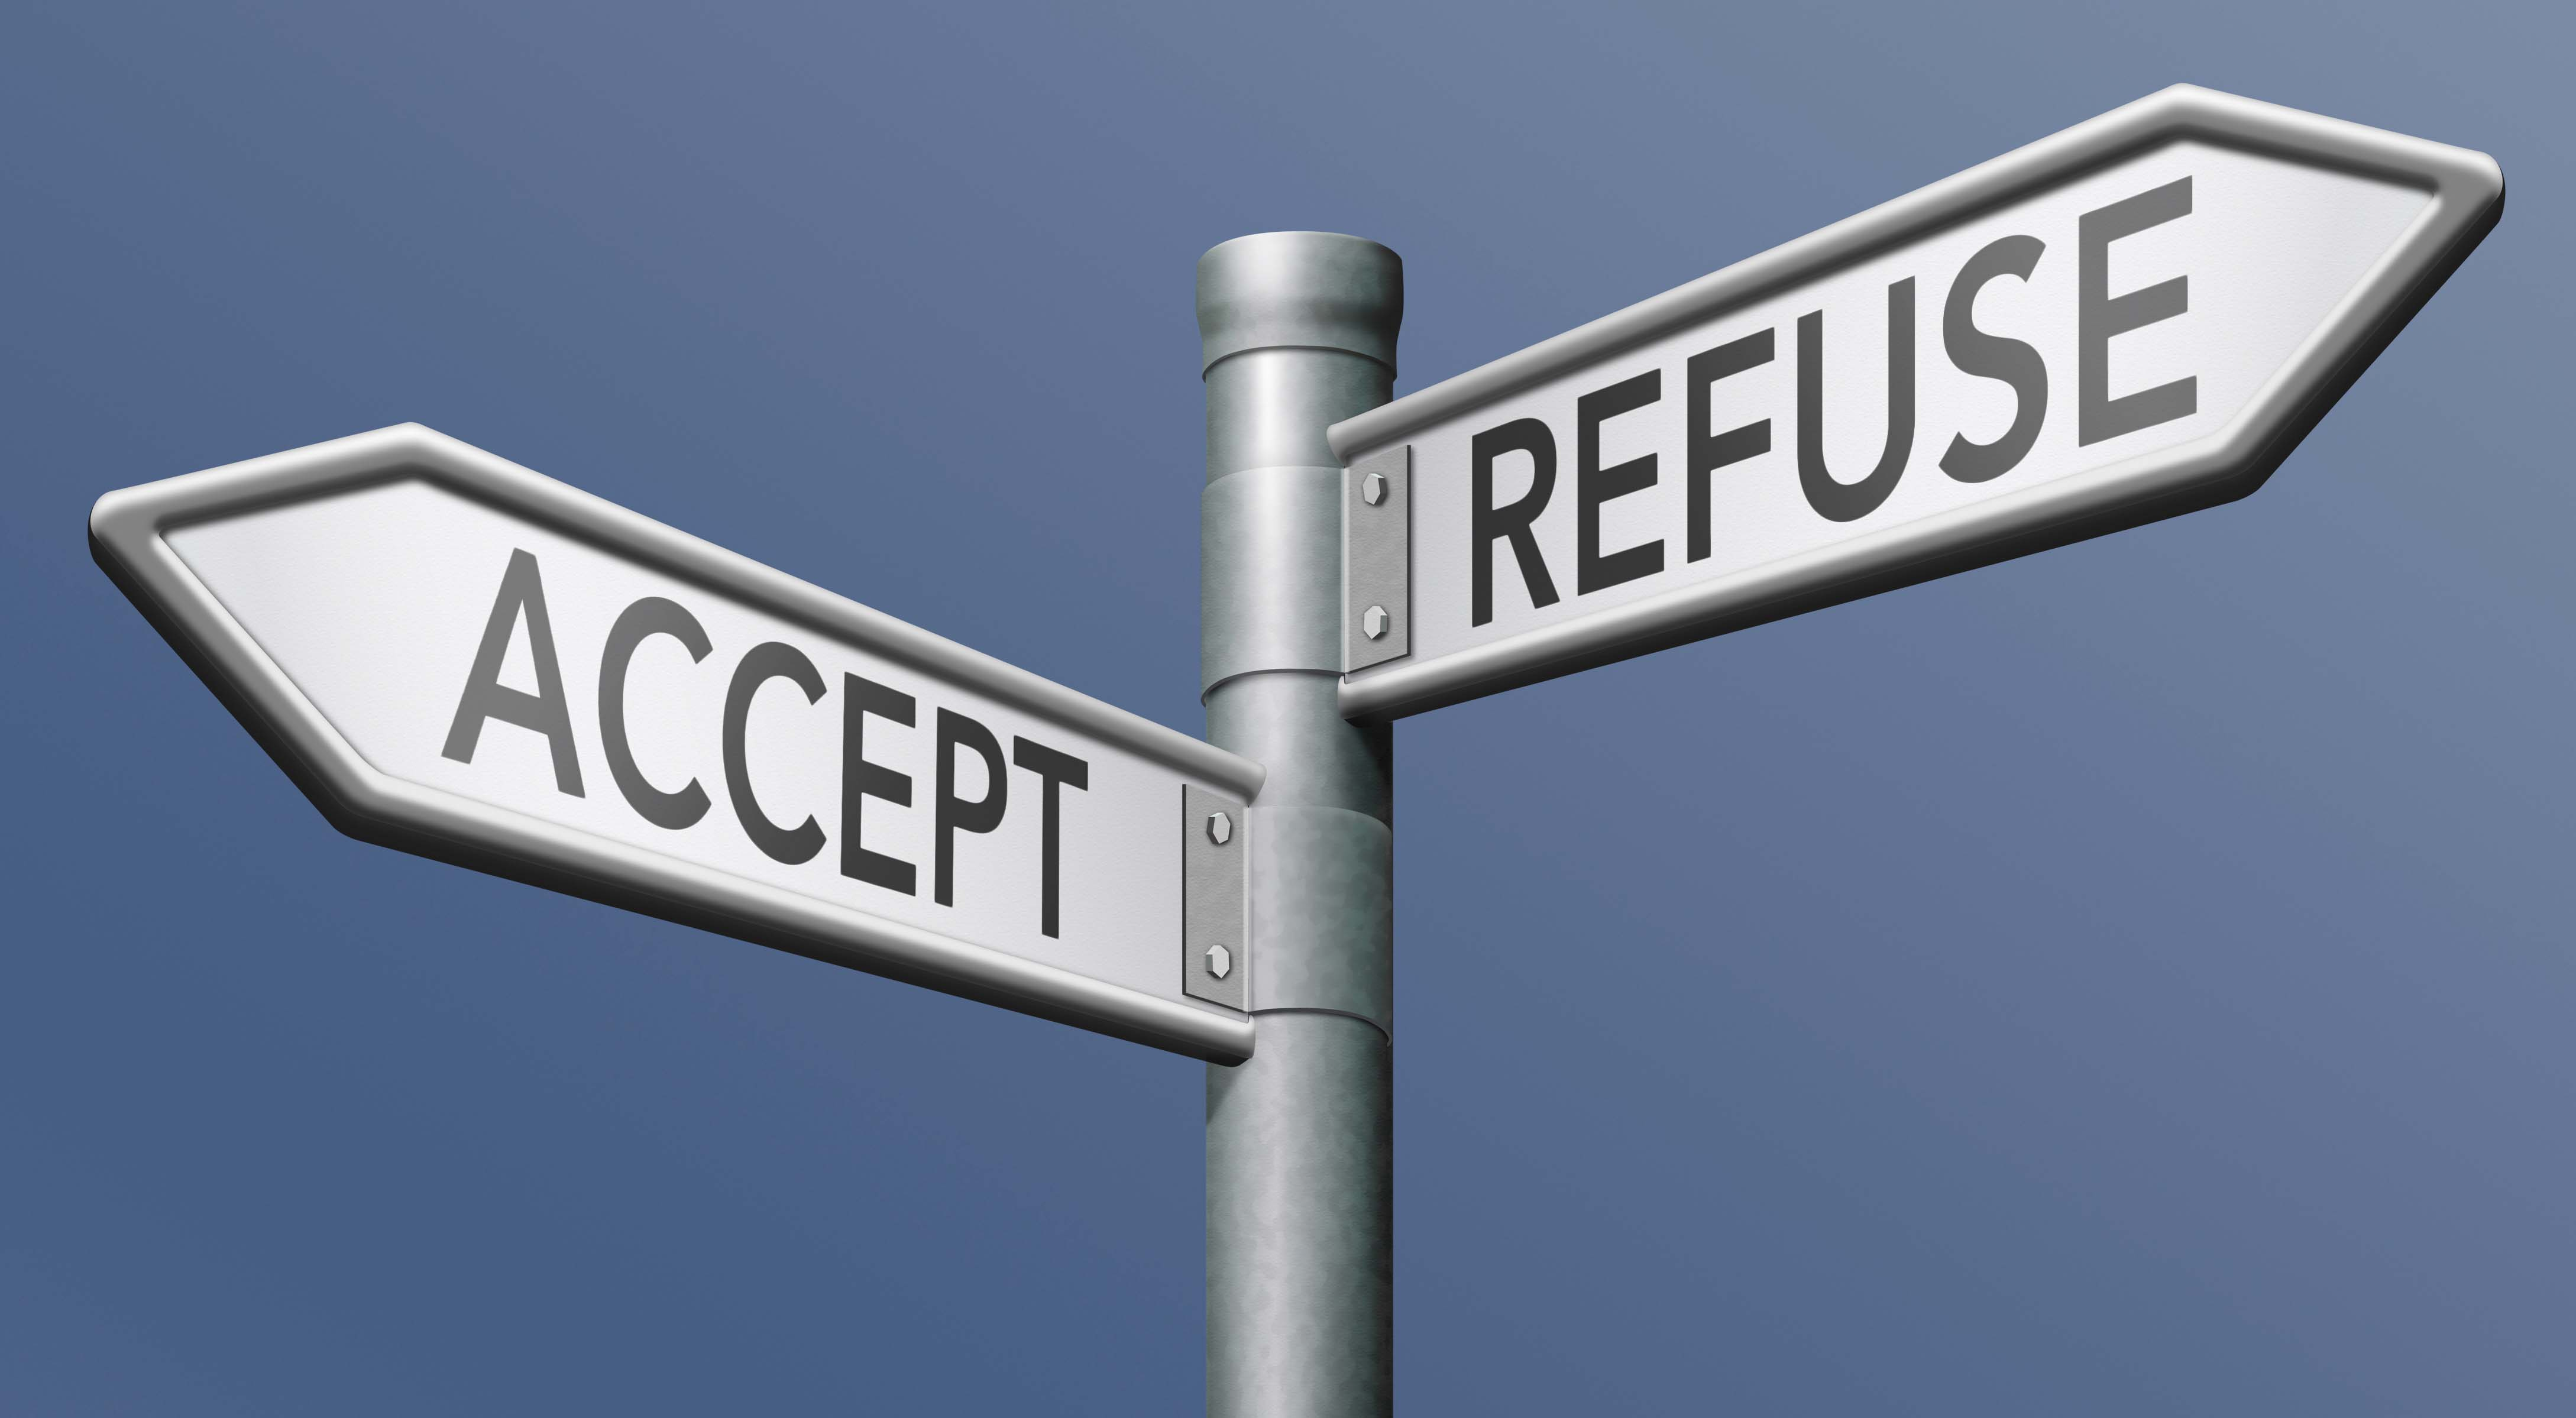 More On Acceptance